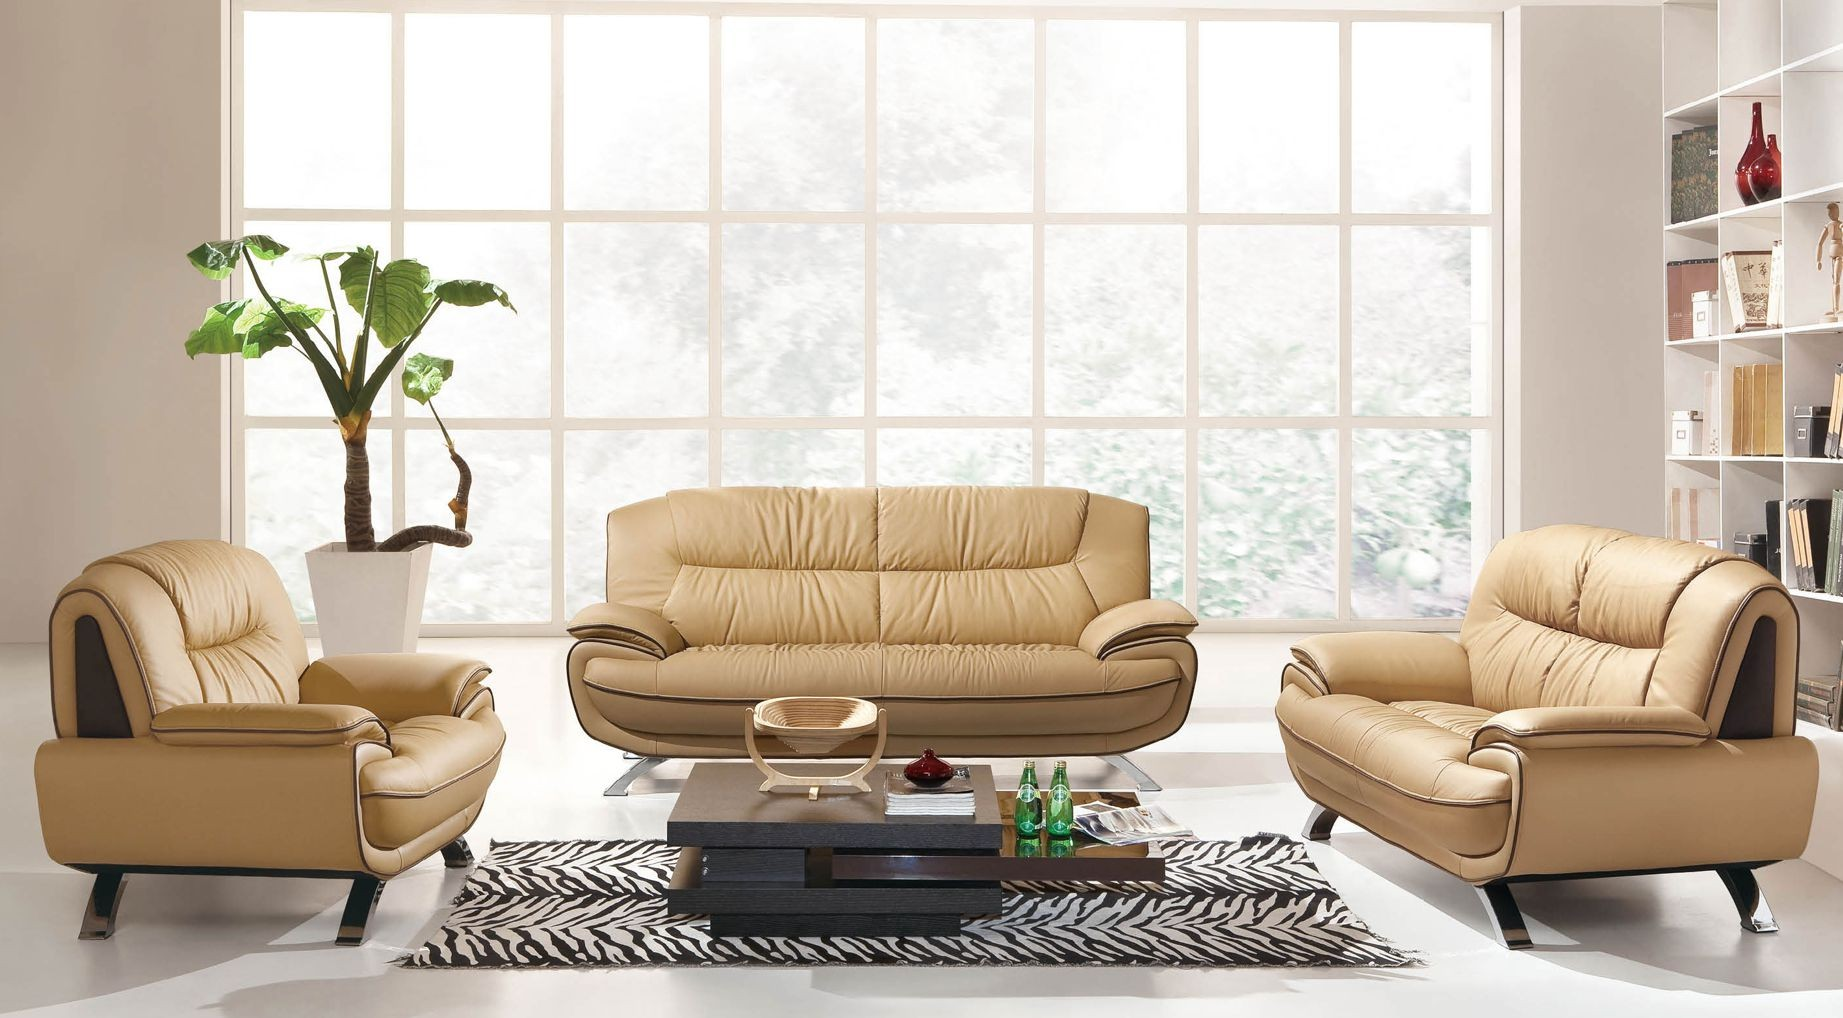 Astonishing Design Of The Brown Leather Modern Sofa Sets With Grey Rugs And White Floor Ideas